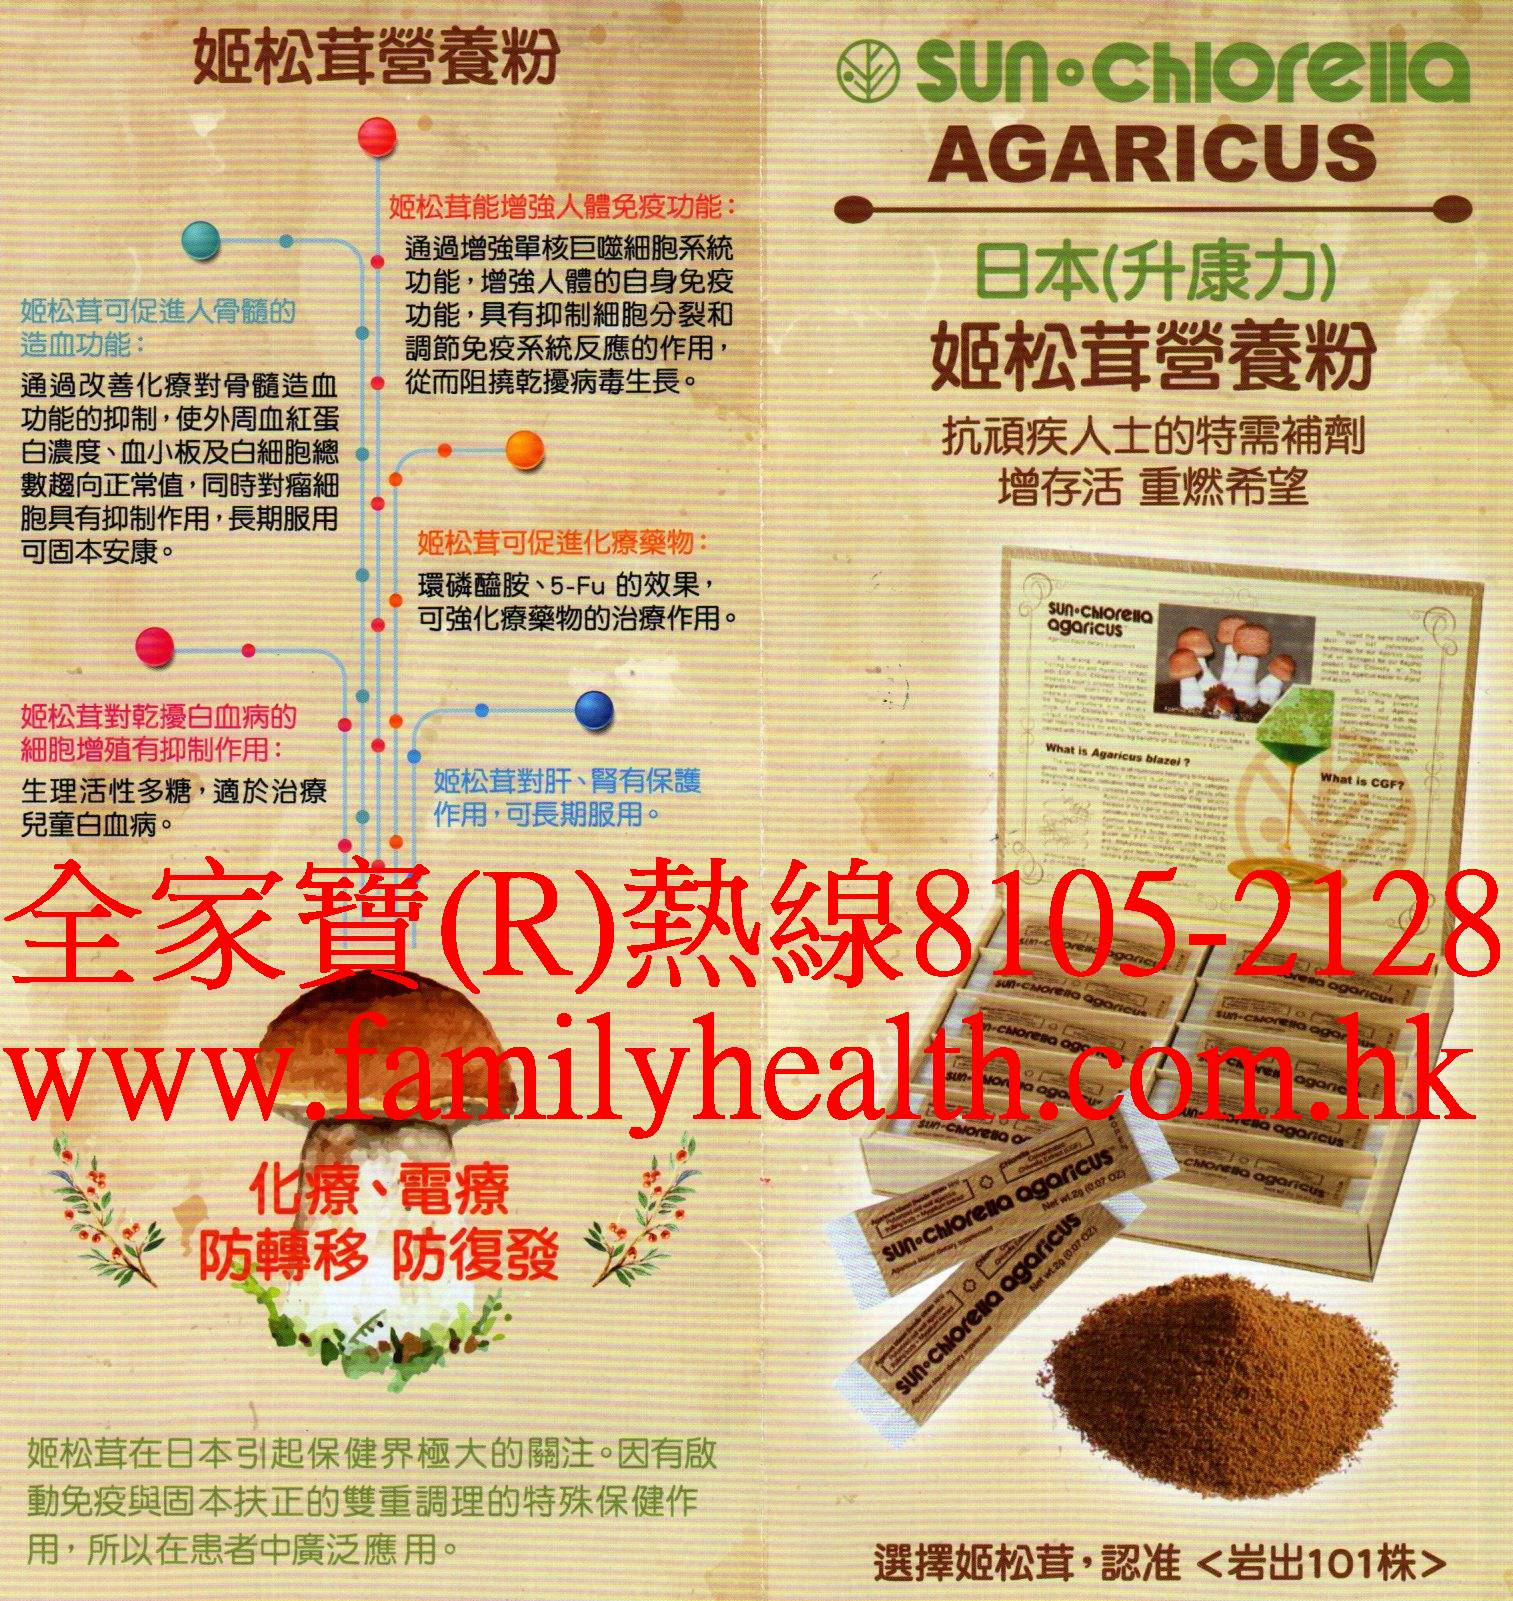 http://www.familyhealth.com.hk/files/full/1037_2.jpg